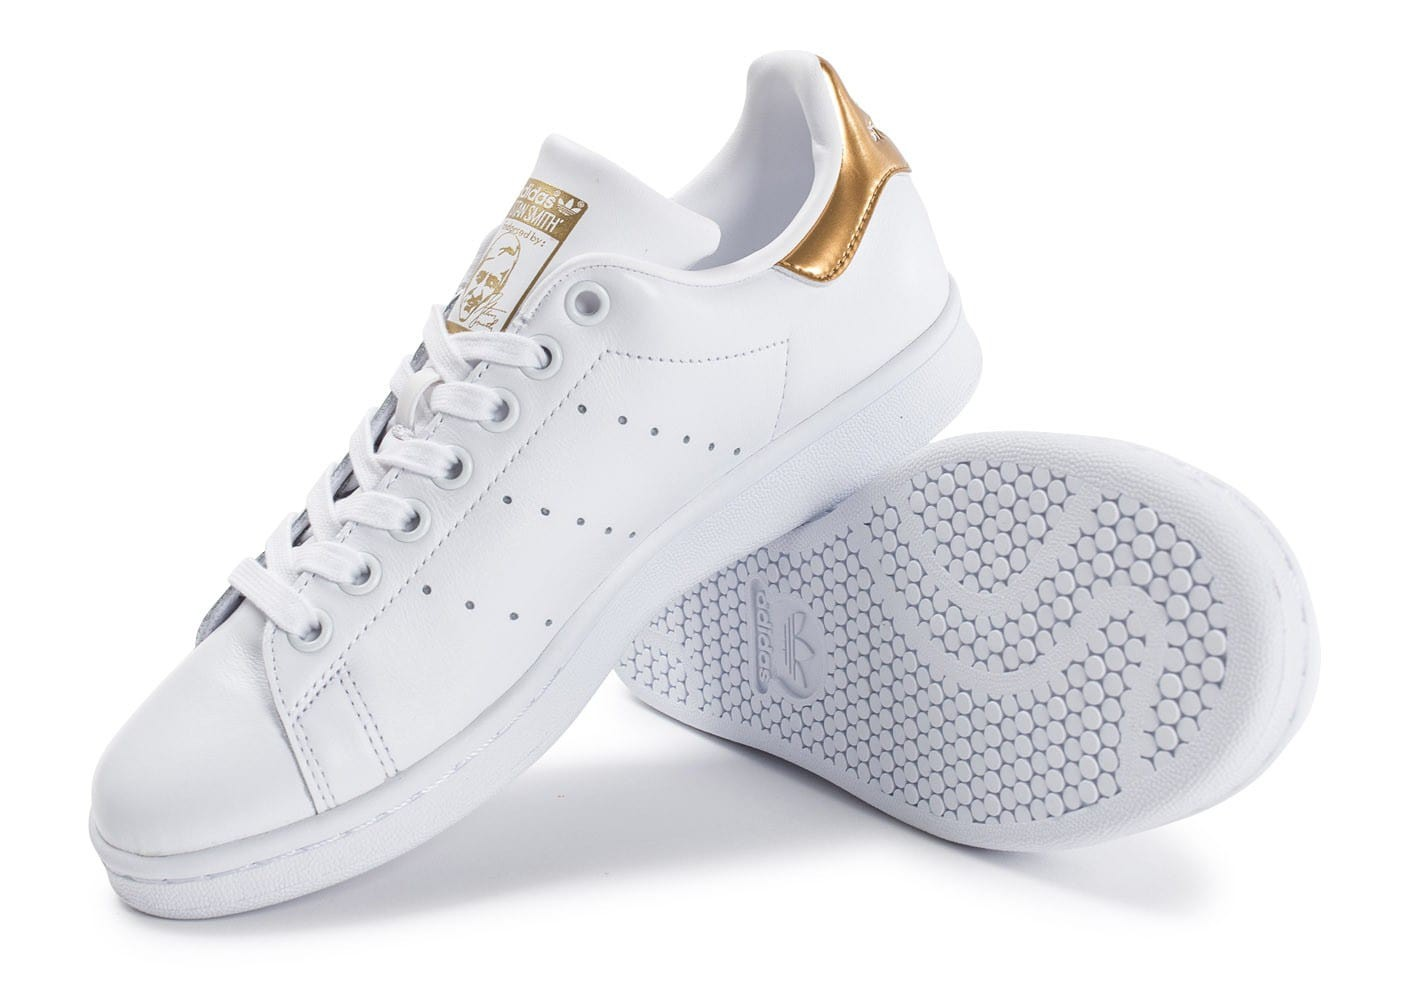 Adidas Chaussure Stan Smith Cf S75188 BlancOr pas cher